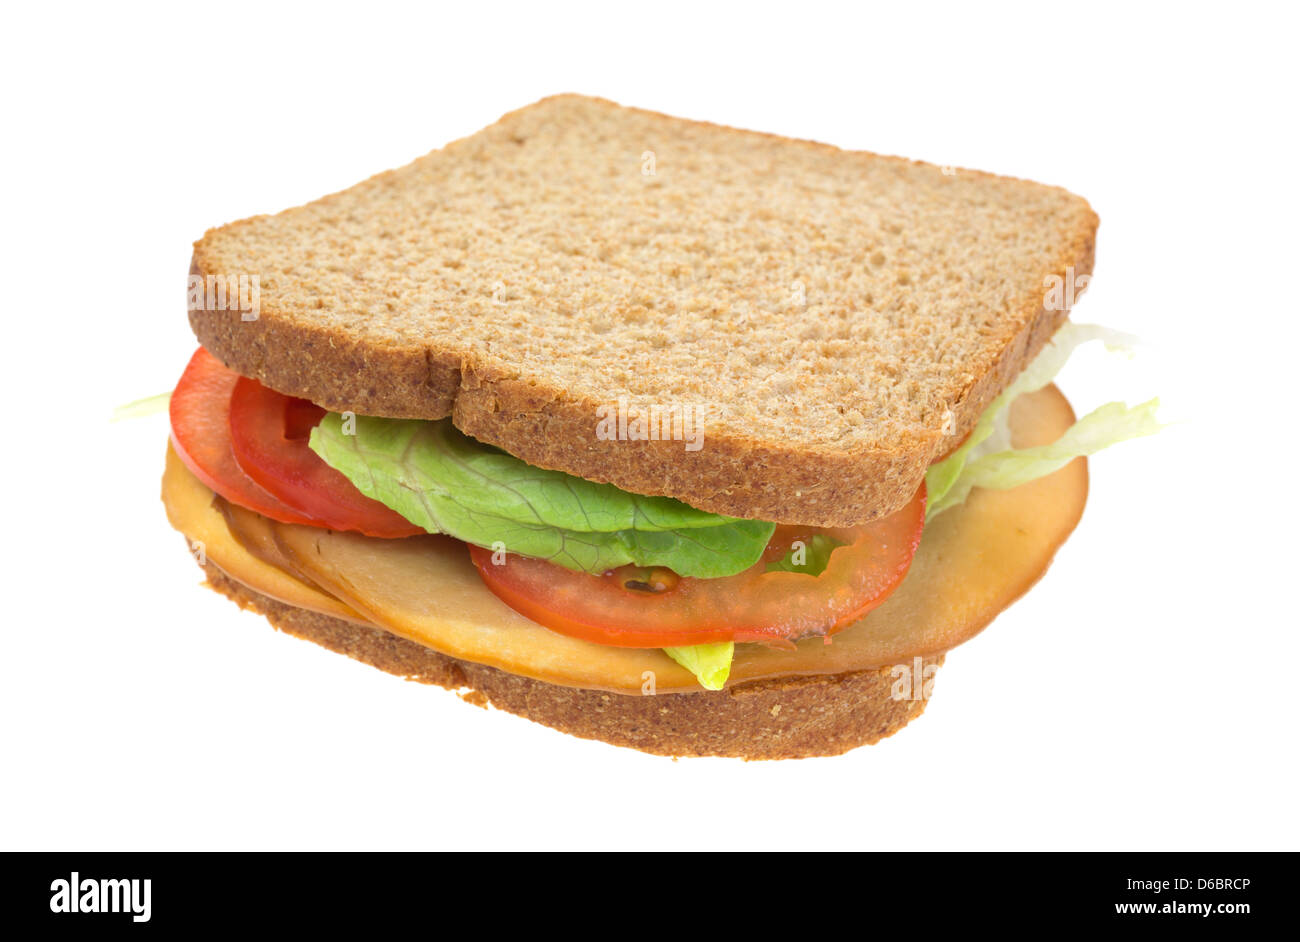 A whole wheat sandwich with tofu smoked turkey tomatoes and lettuce. - Stock Image